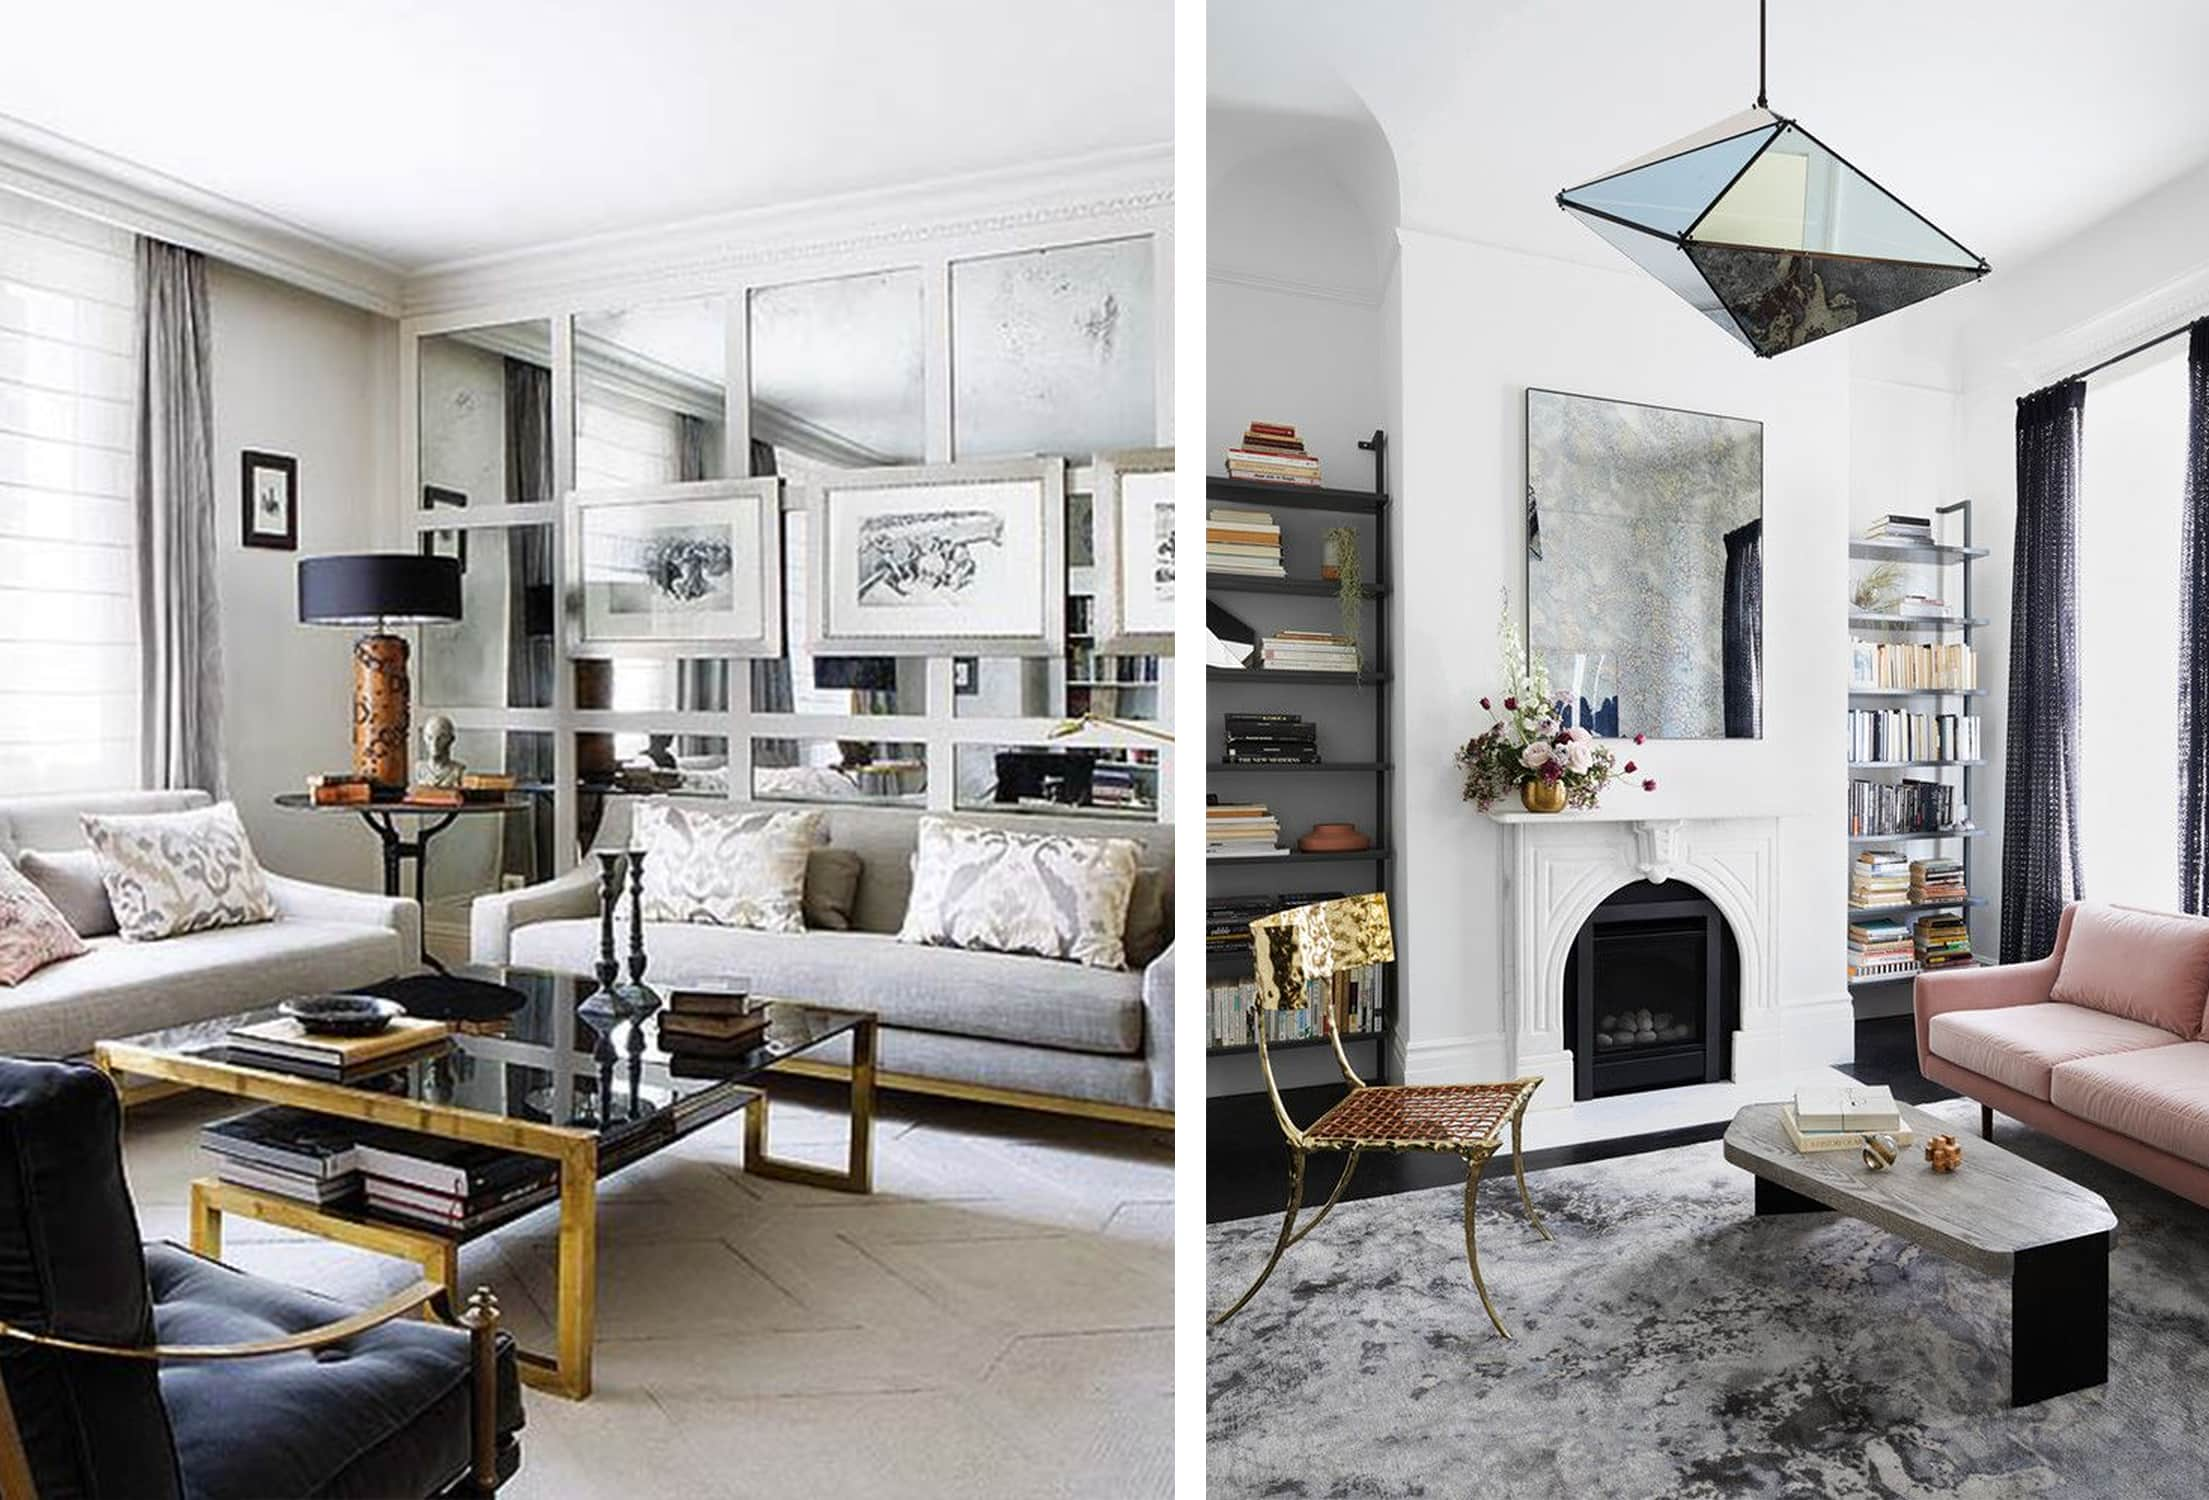 mixed metal accents in the living room